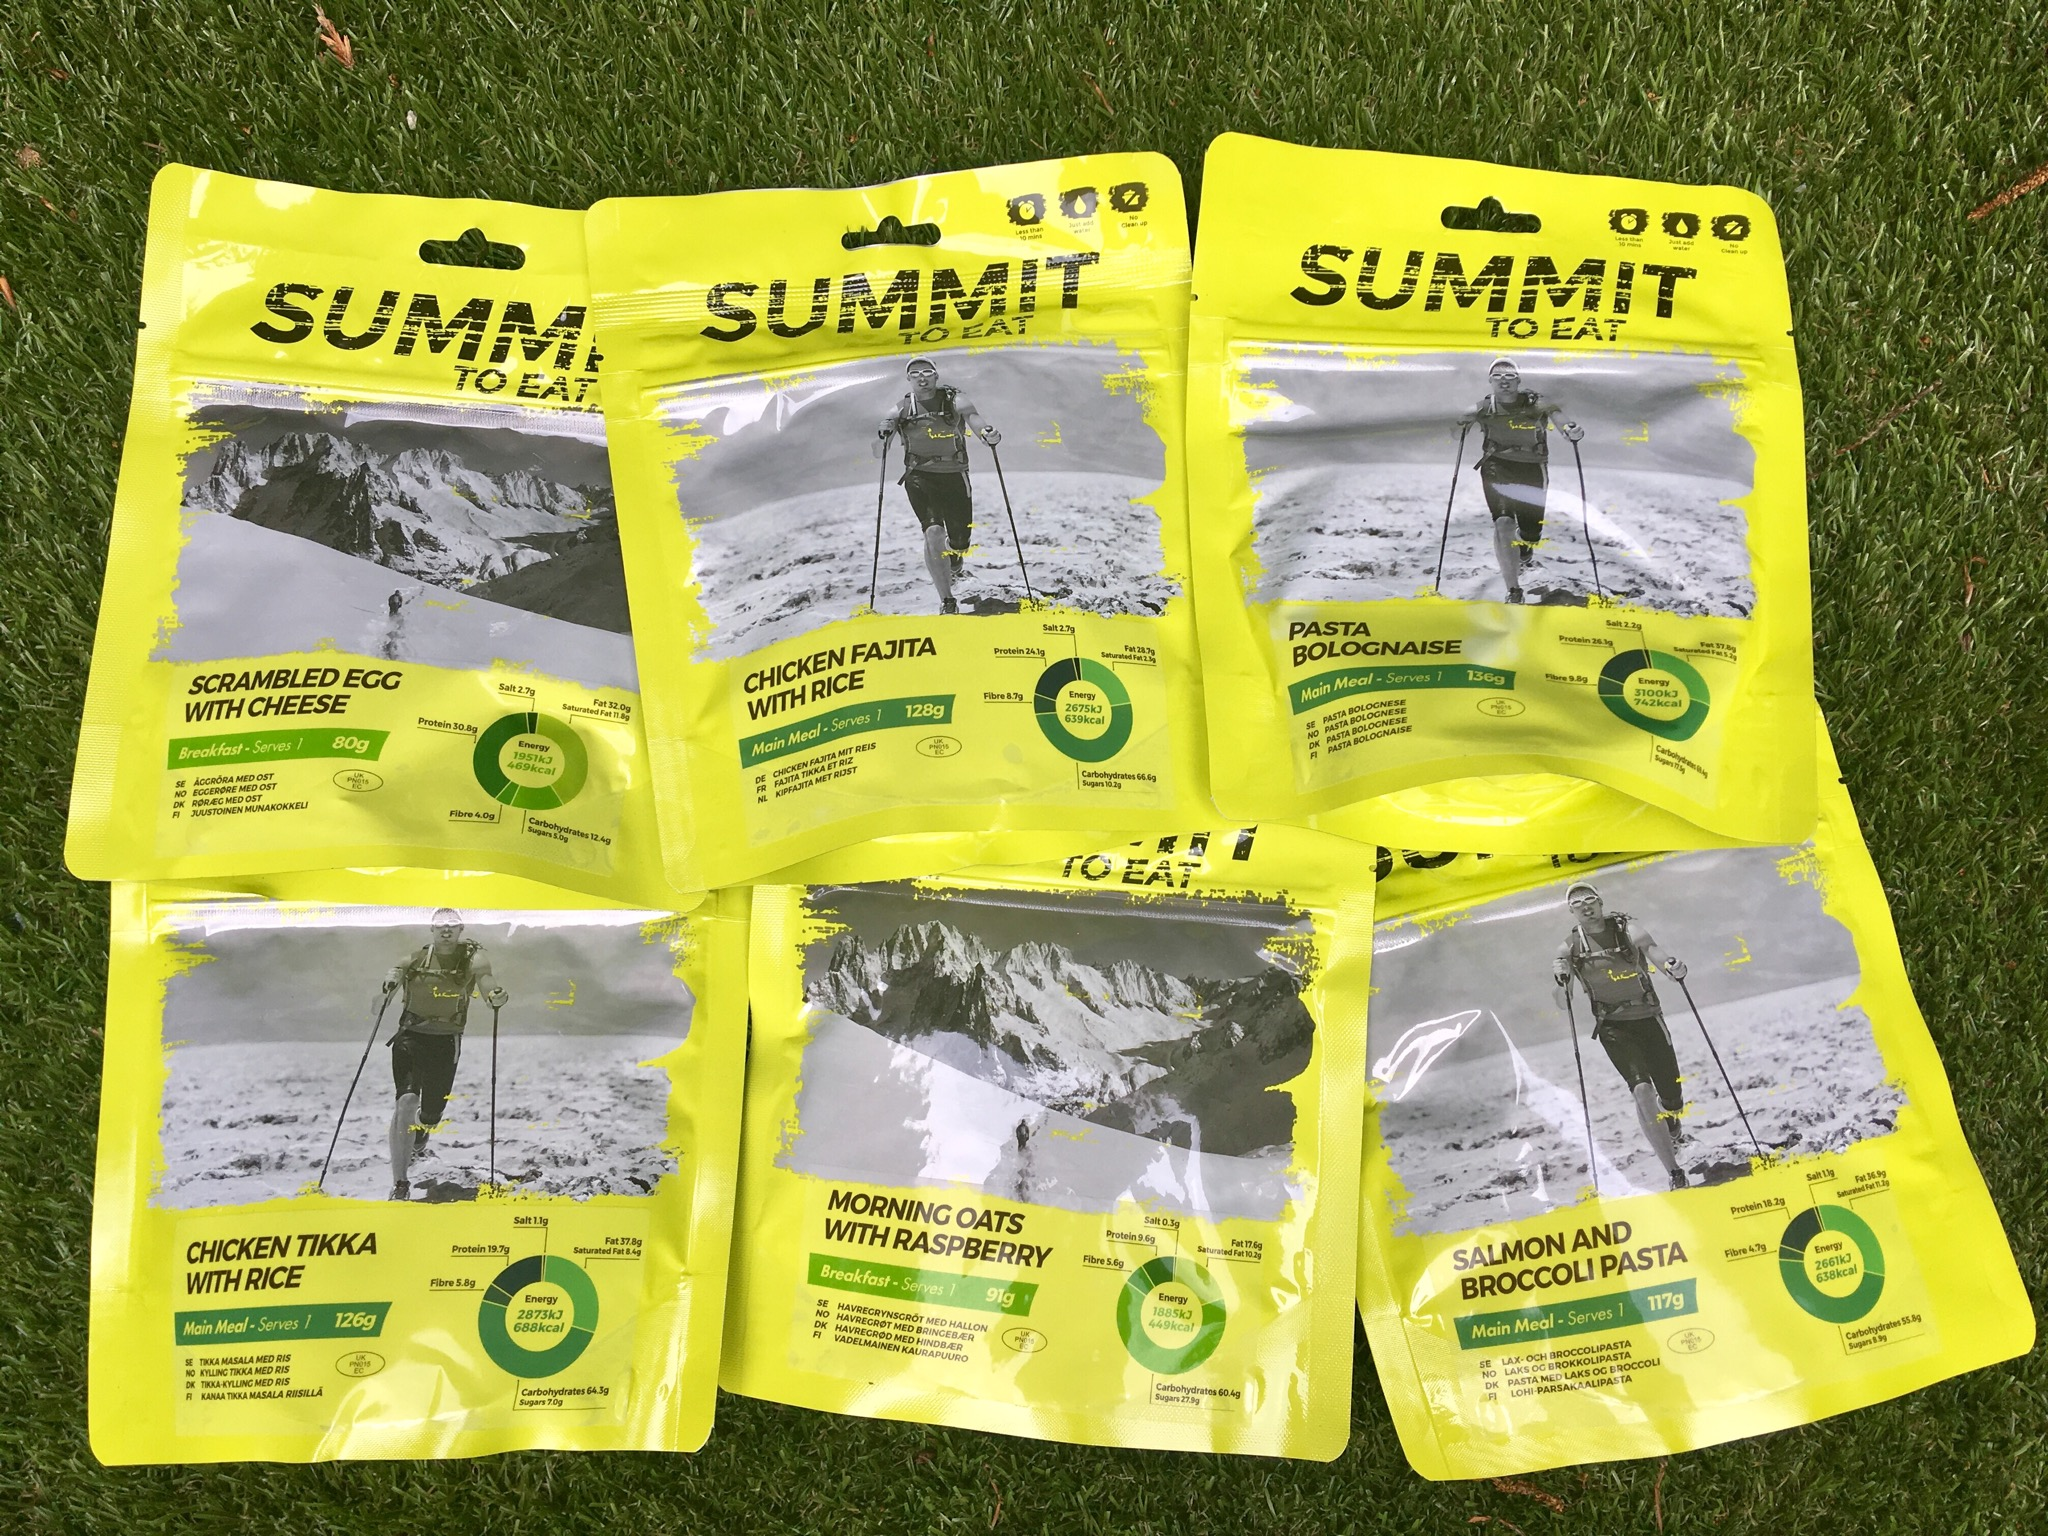 Summit to Eat review a photo of the meals in yellow packaging